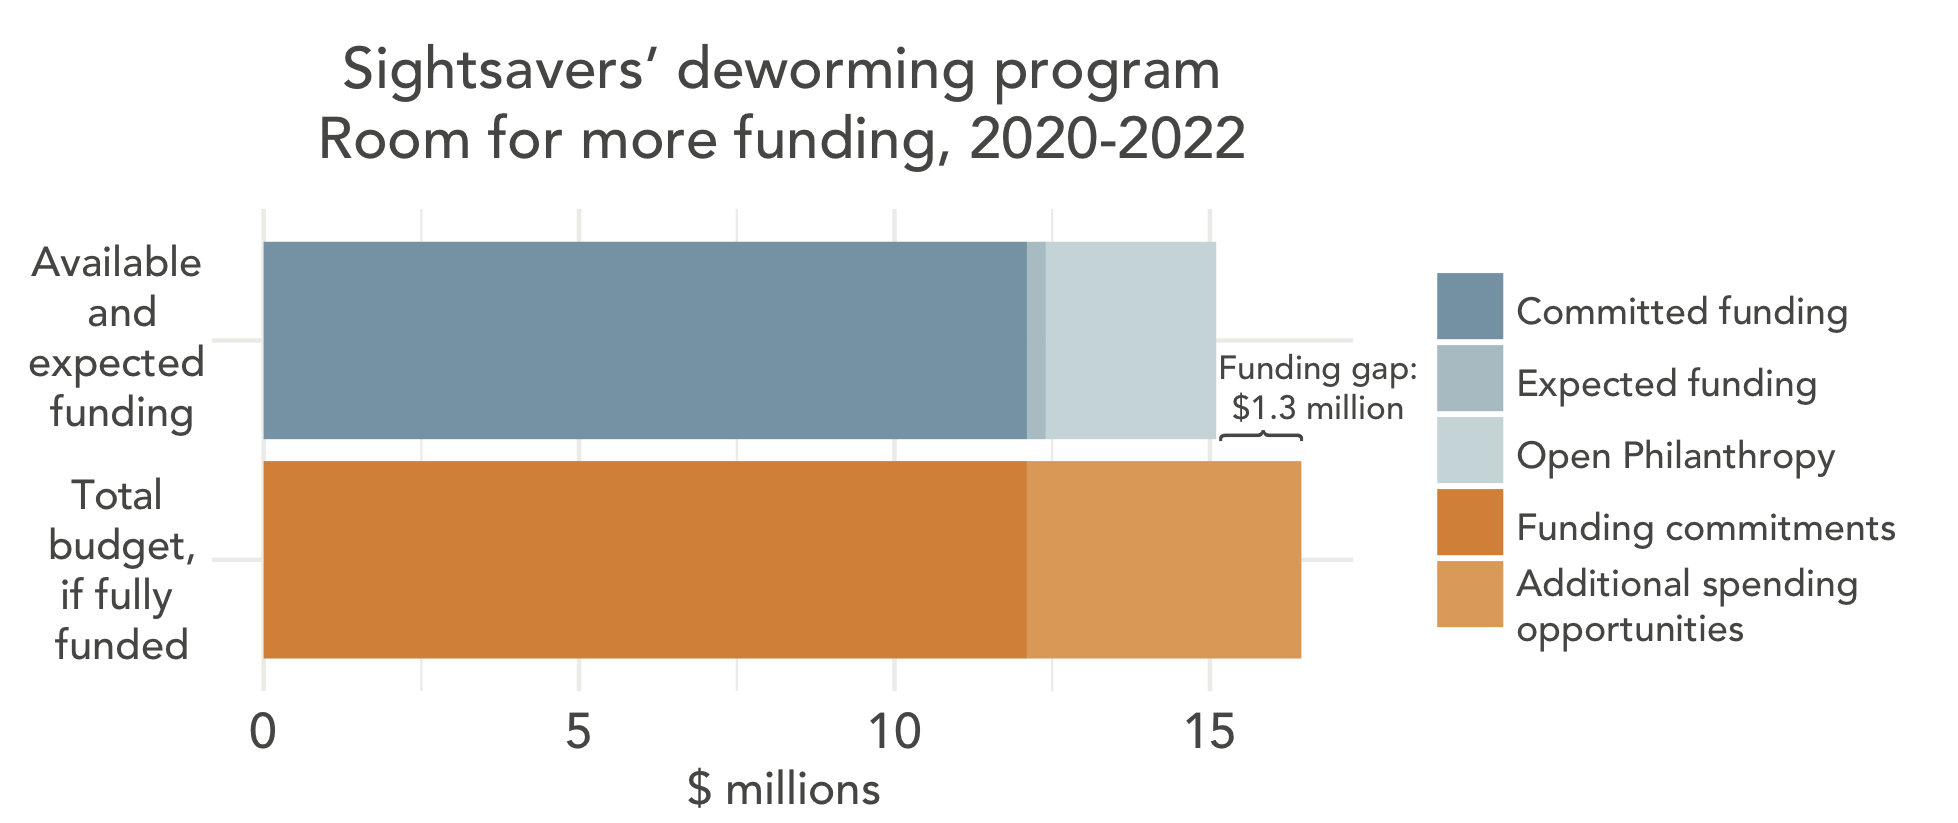 Room for more funding for Sighsavers' deworming program 2020-2022